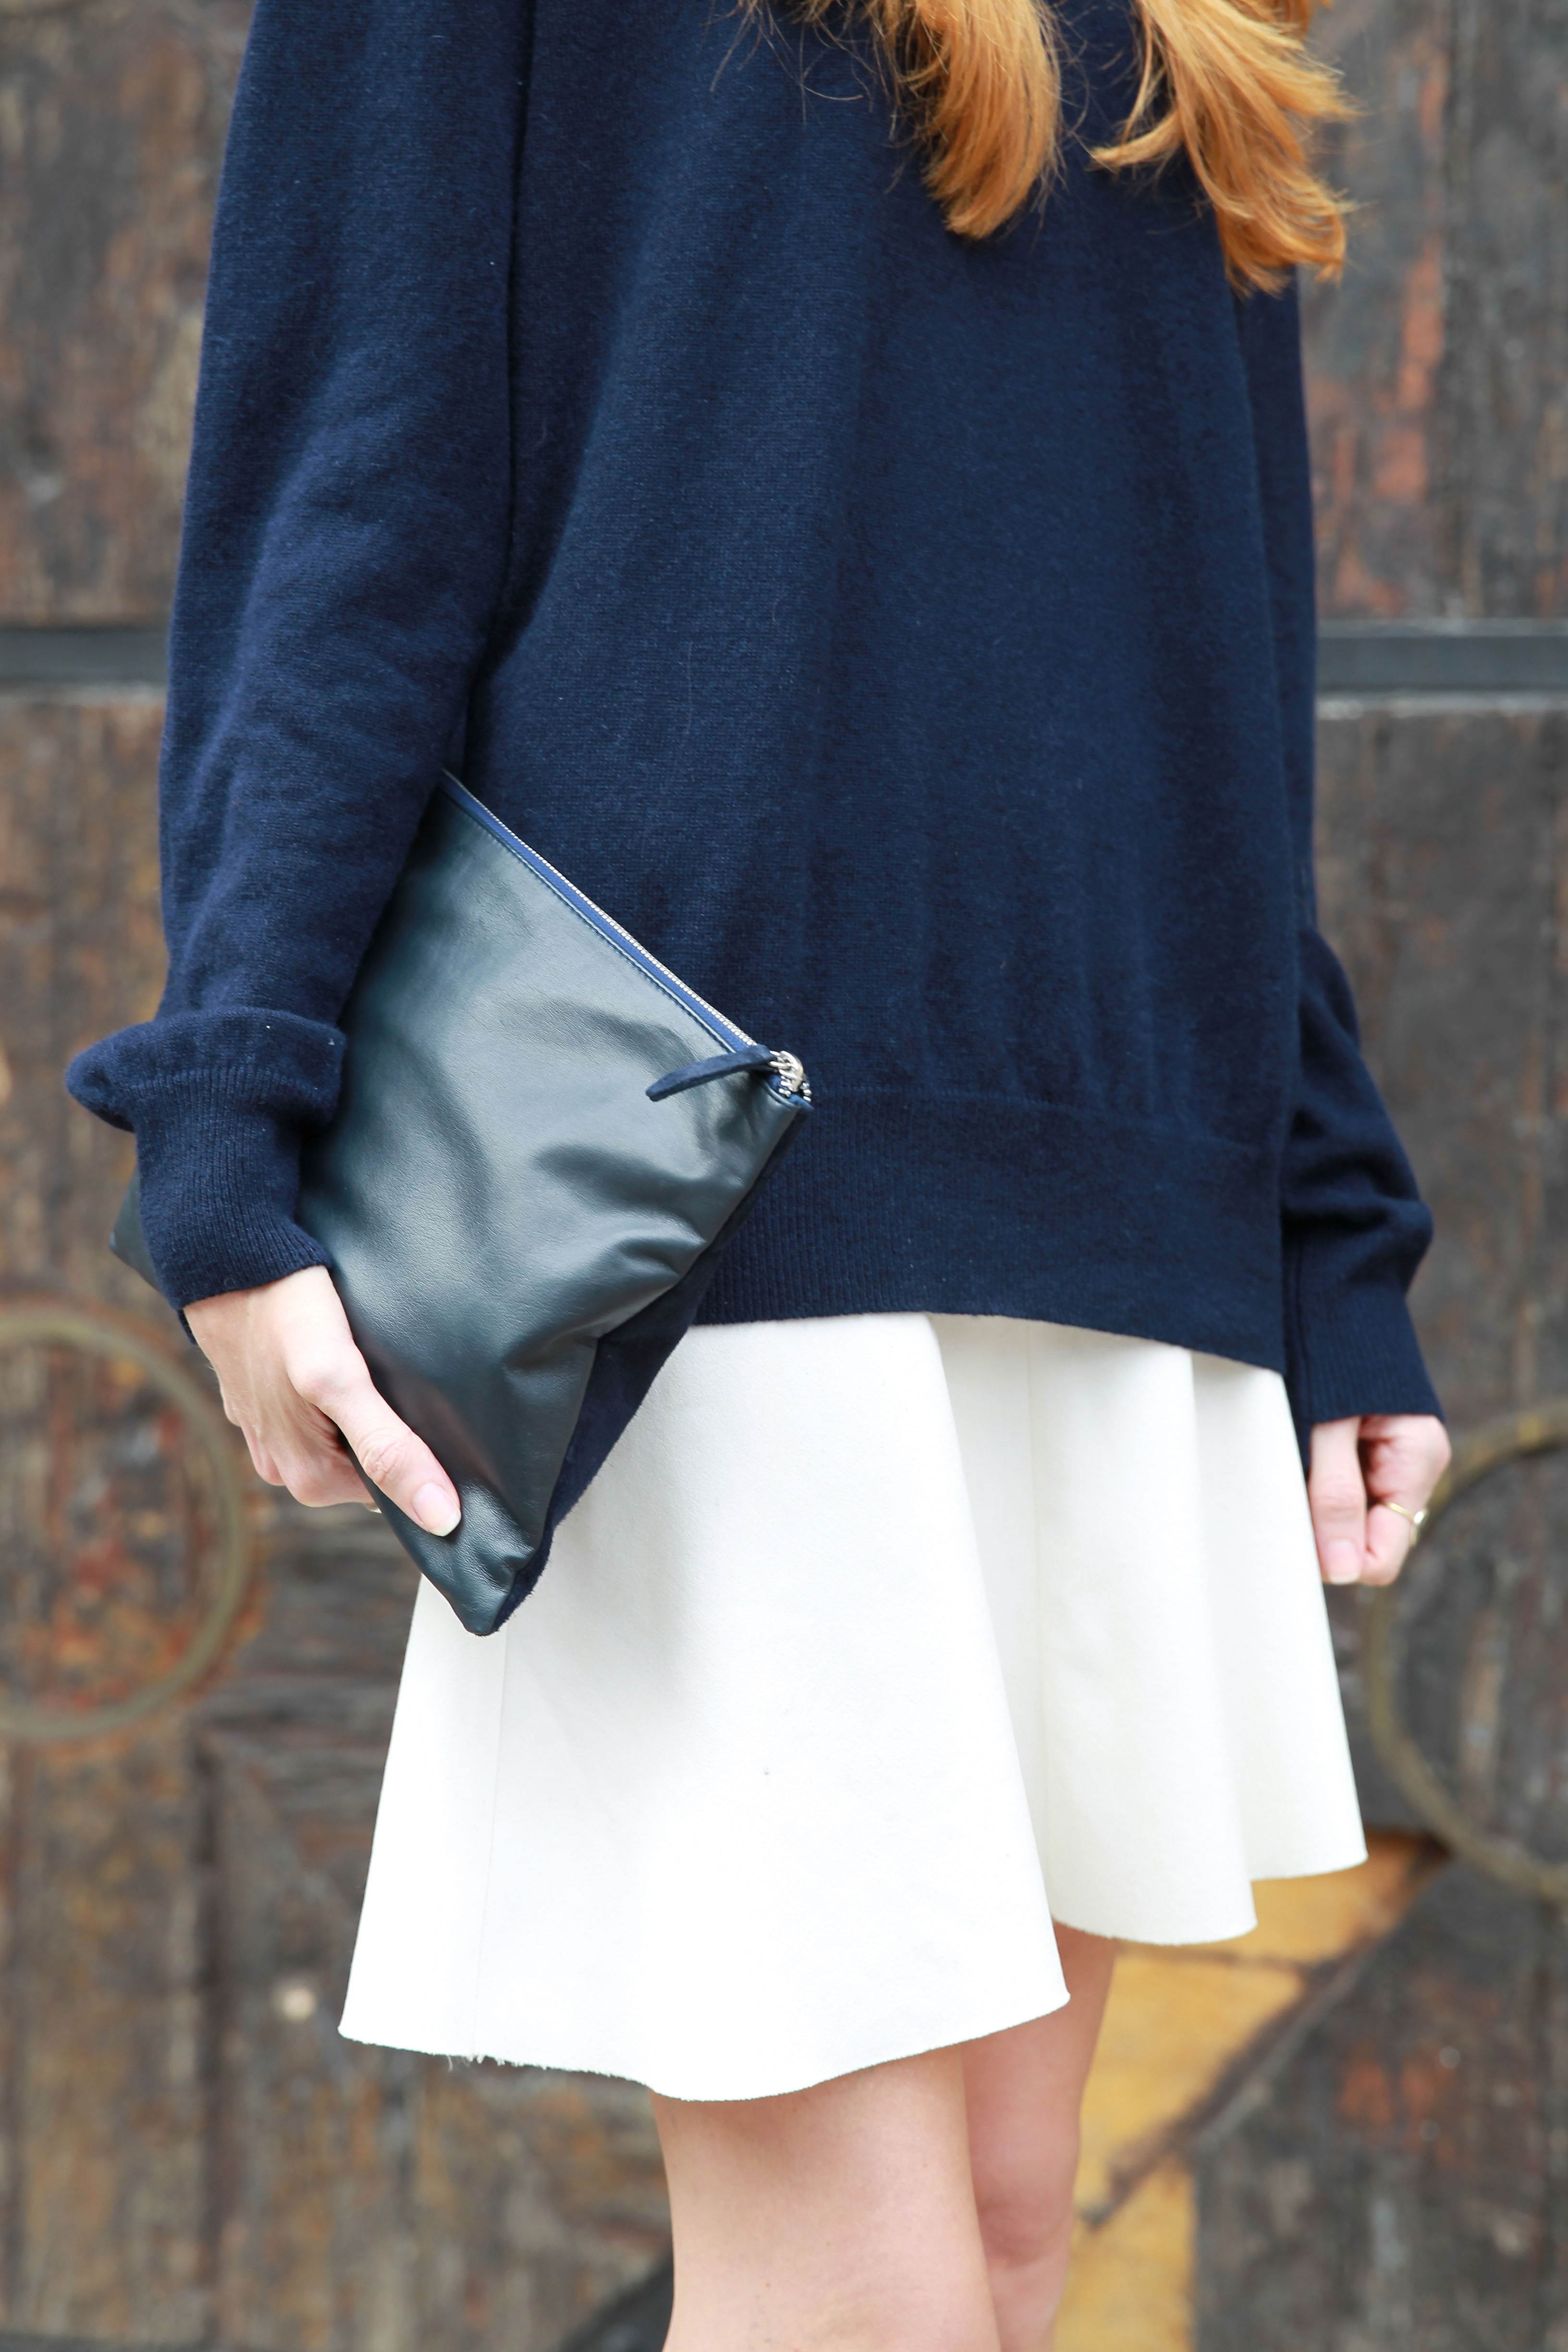 How To Shop For Oversized Sweaters Because Comfort Is Key This Winter